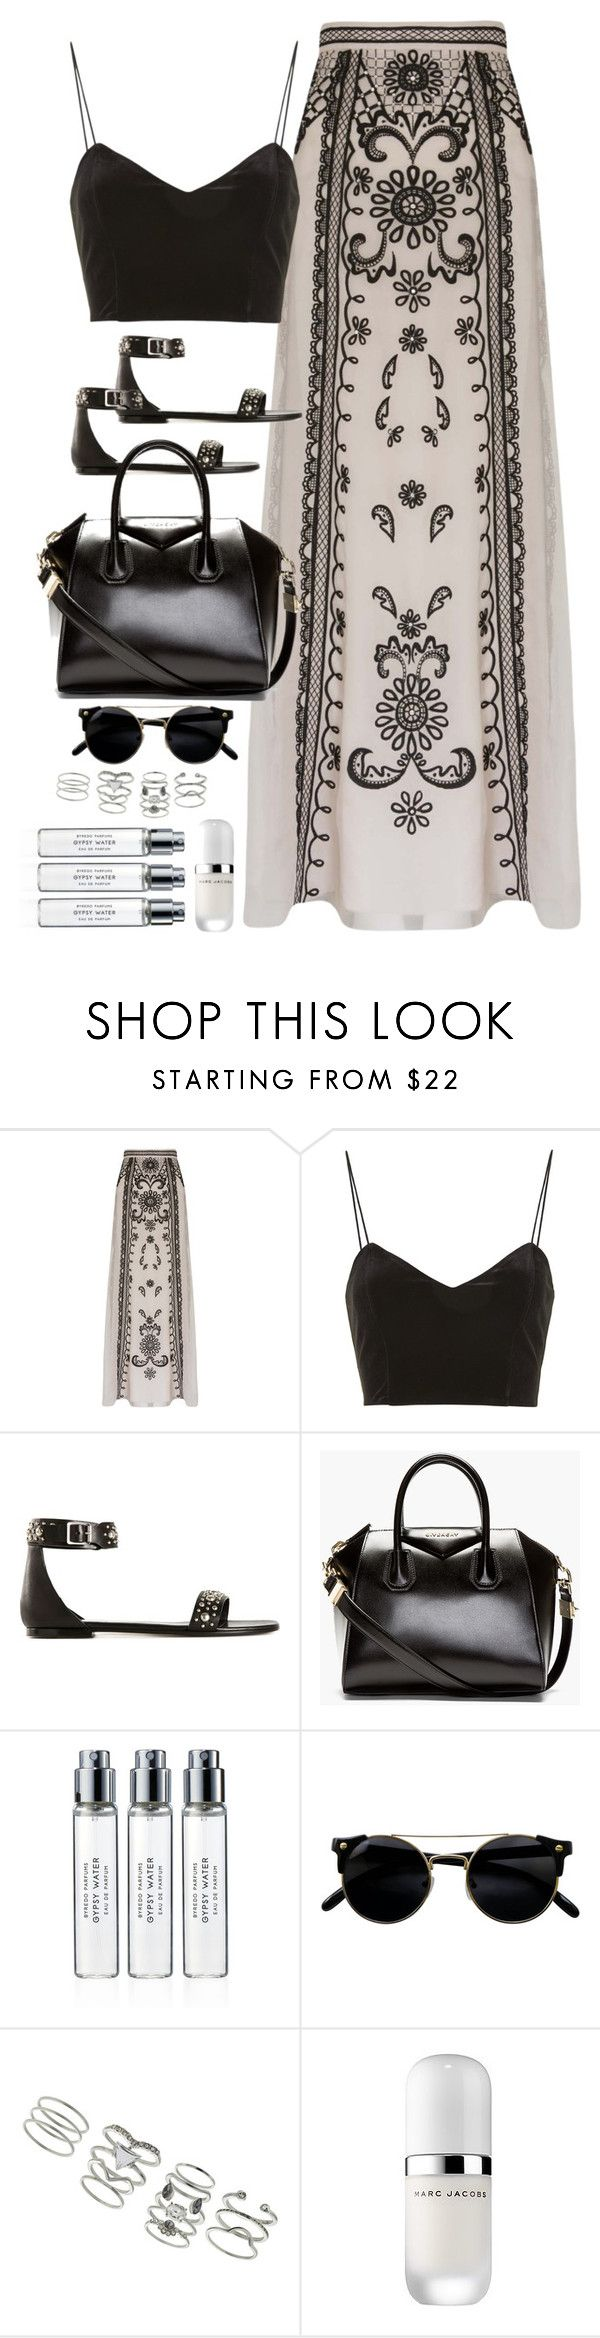 """Untitled#4443"" by fashionnfacts ❤ liked on Polyvore featuring Temperley London, Topshop, Yves Saint Laurent, Givenchy, Byredo, Miss Selfridge and Marc Jacobs"